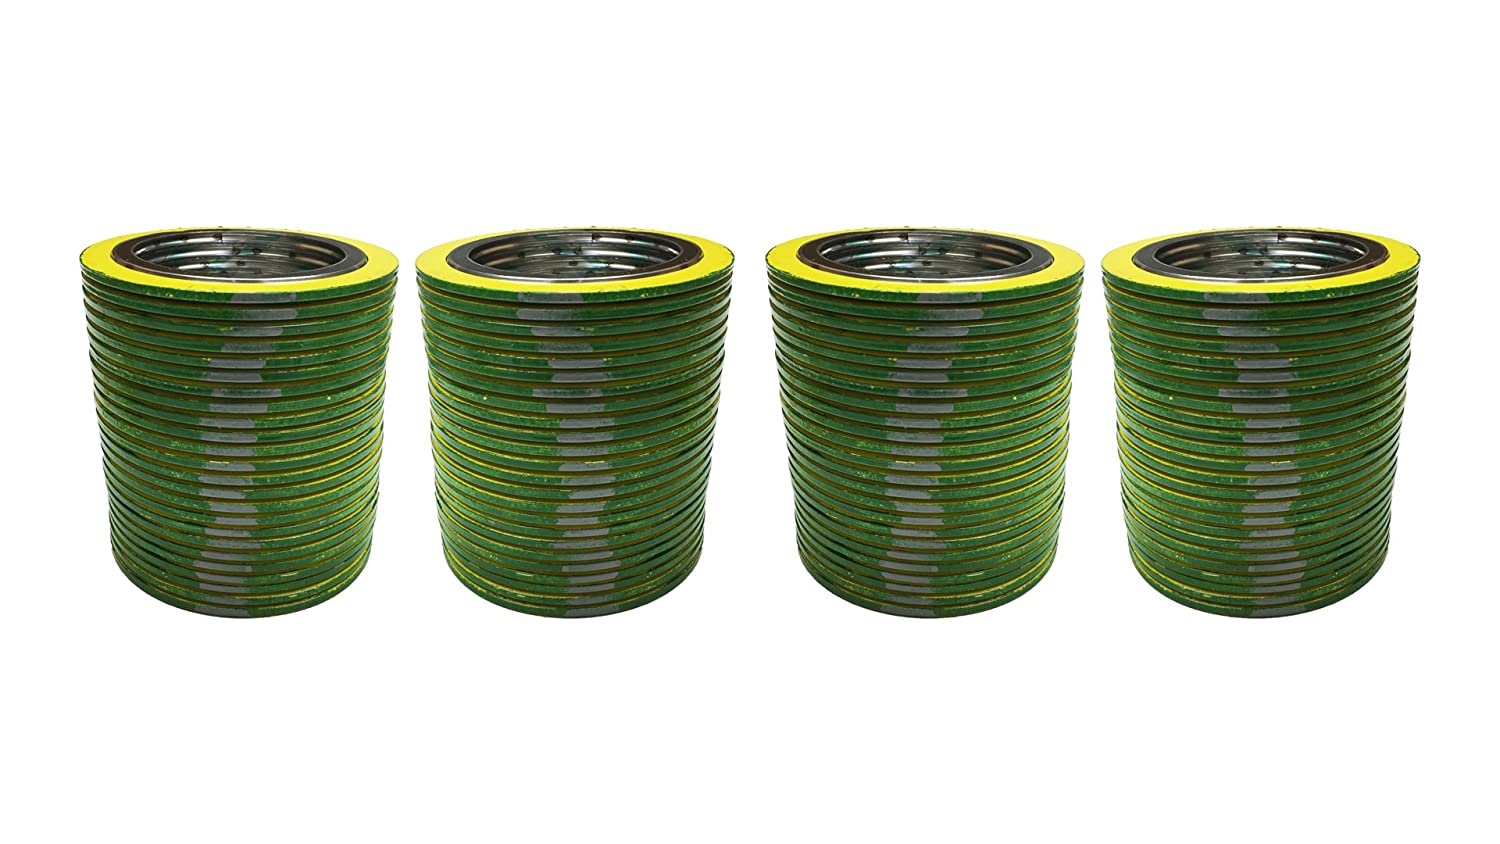 QTY: 96 Pack of 96 of NJ for 1//2 Pipe Sterling Seal 9000.500316GR600X96 316L Stainless Steel spiral Wound Gasket with Flexible Graphite Filler for 1//2 Pipe 0.5 Supplied by Sur-Seal Inc Pressure Class 600# green Band with Grey Stripes 0.5